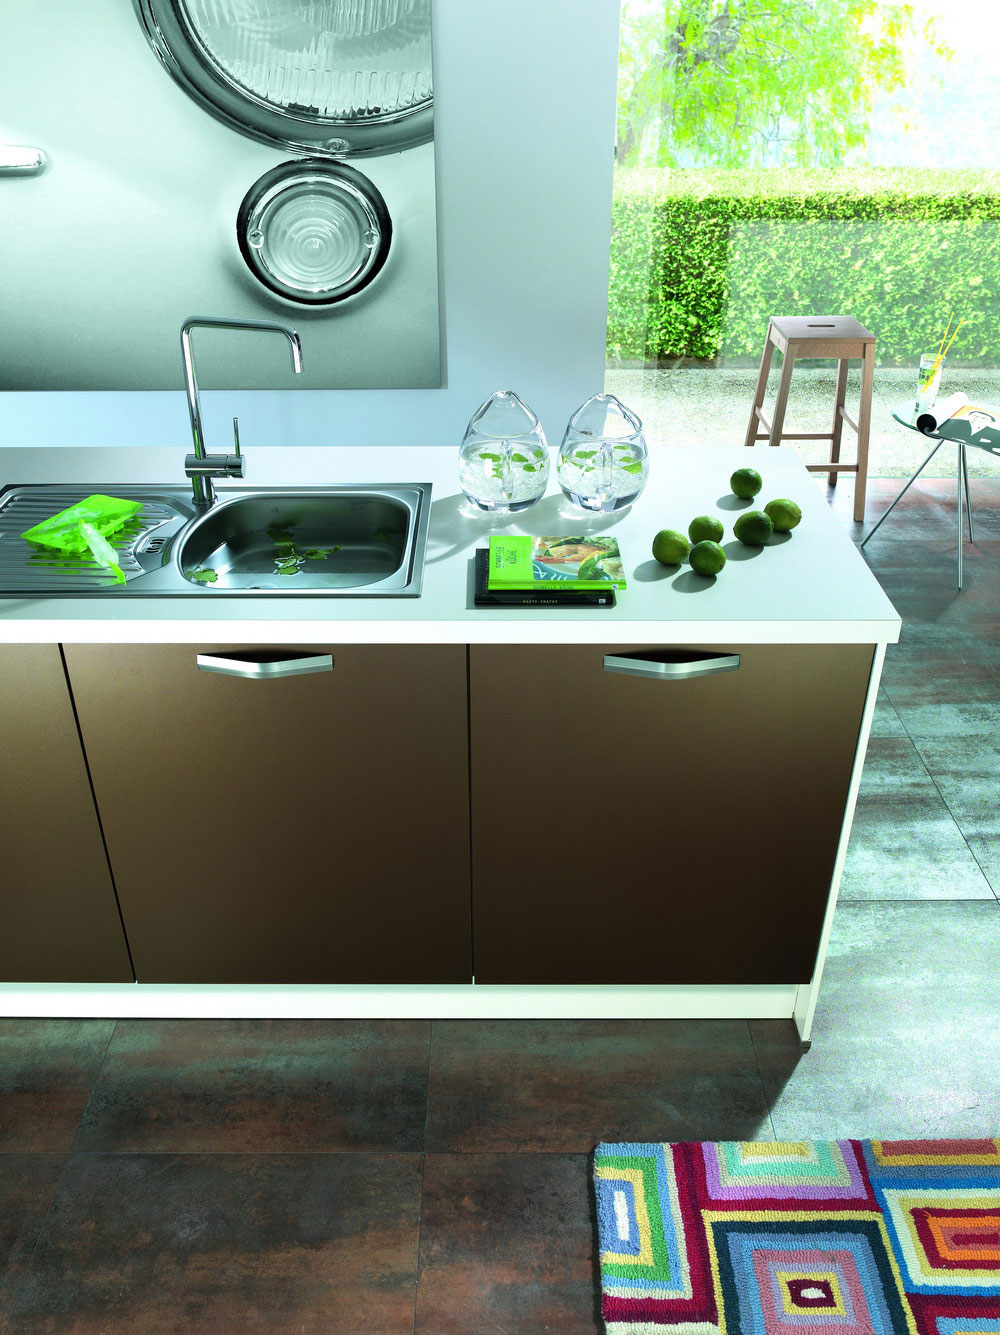 Cuisine marron 8 photo de cuisine moderne design for Cuisine marron